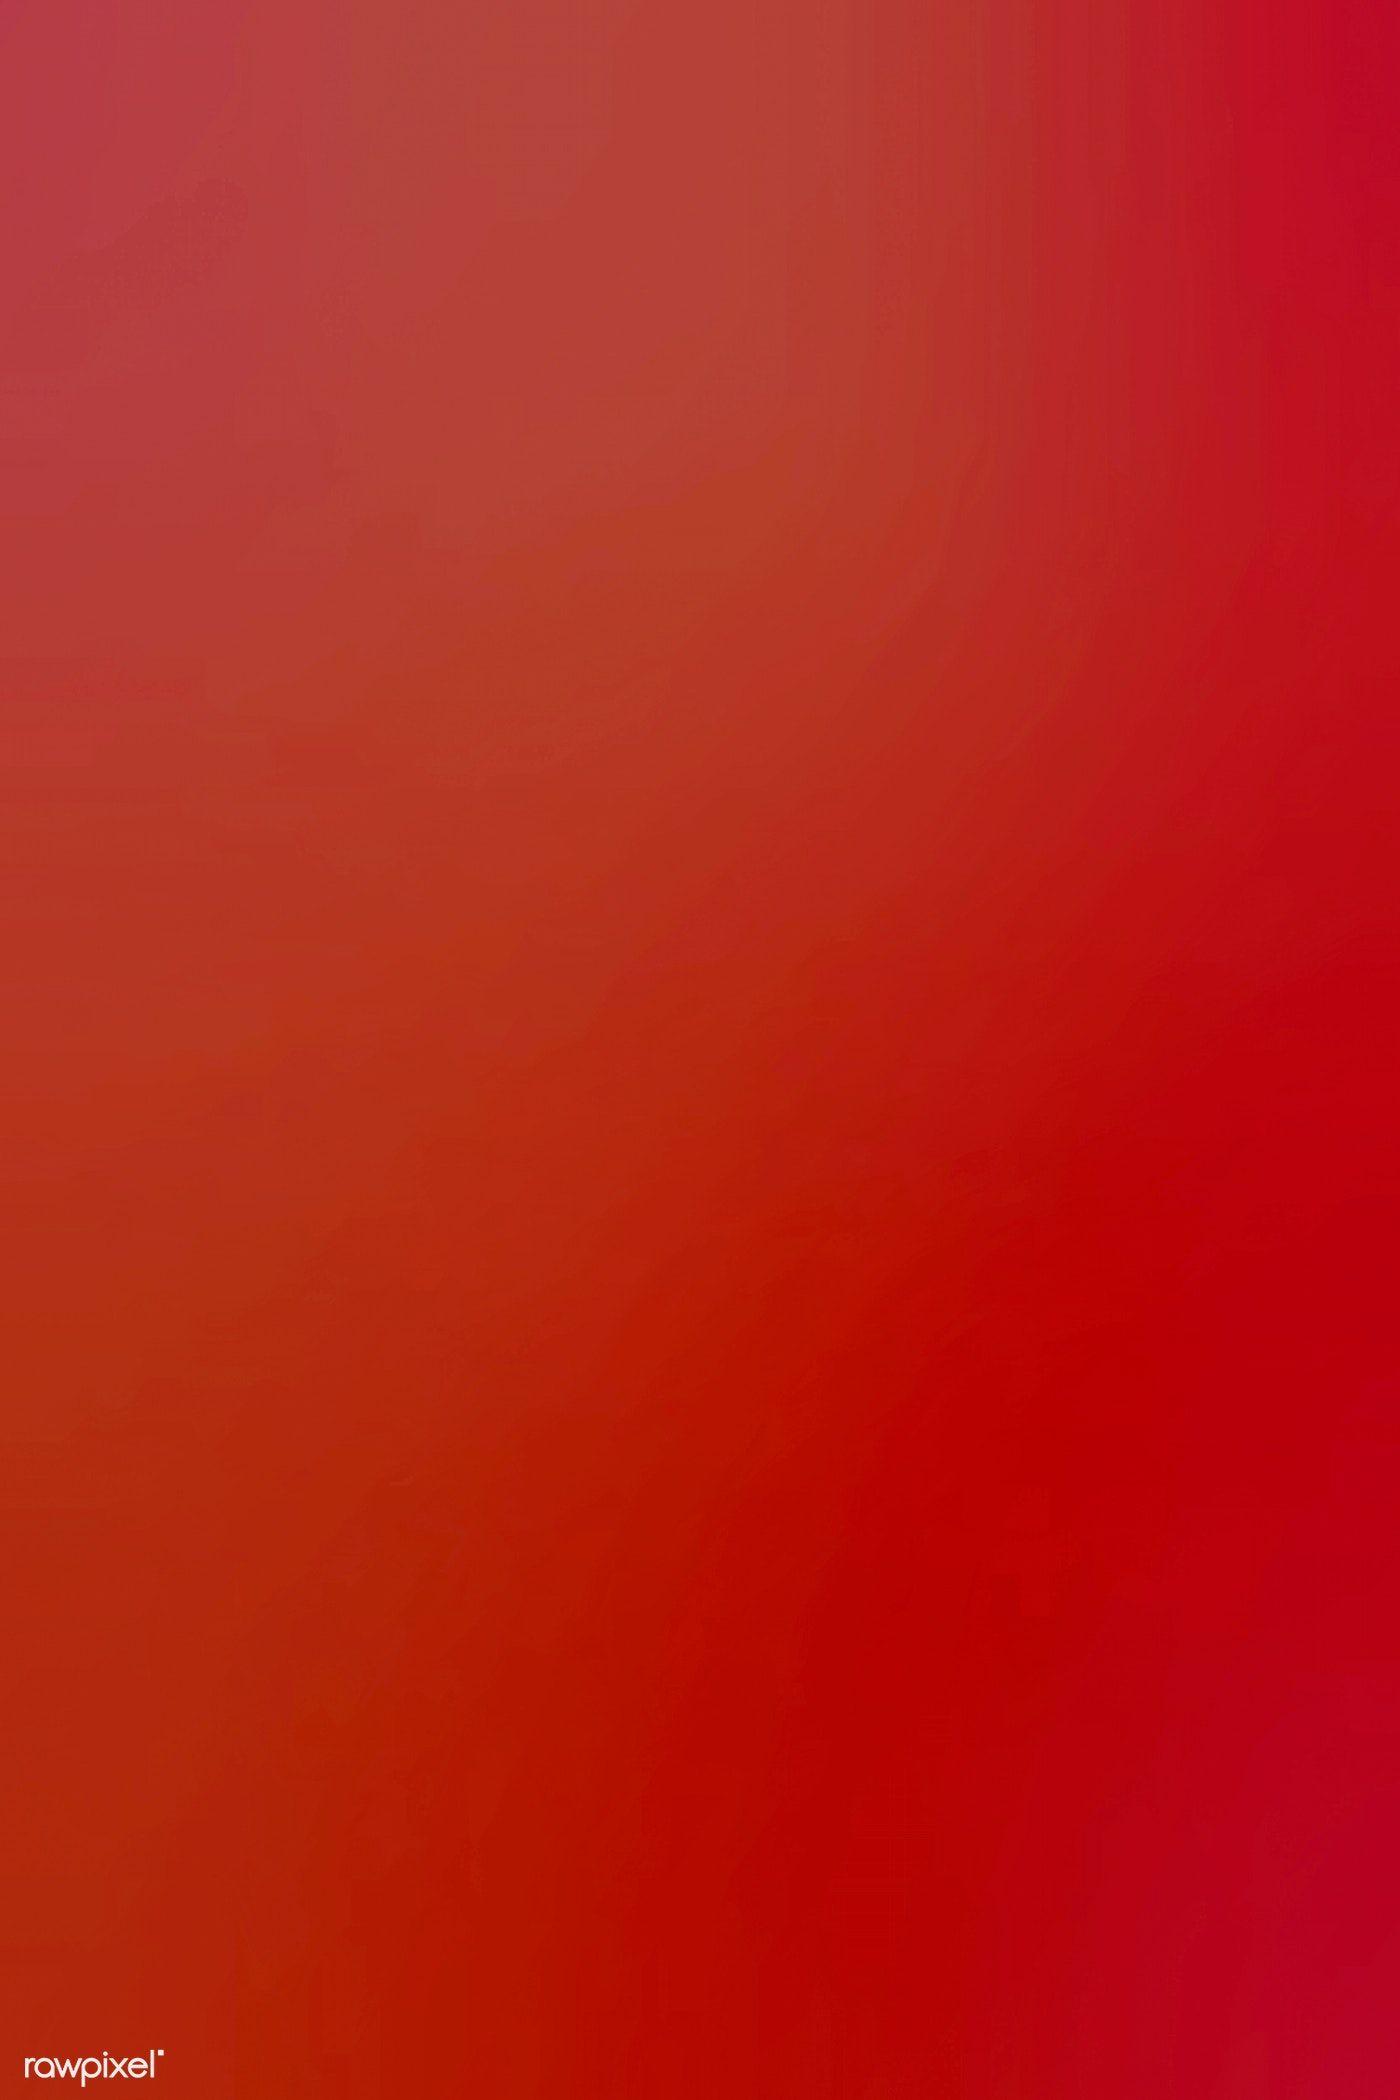 Simple Bright Red Style Background Free Image By Rawpixel Com Marinemynt In 2020 Plain Wallpaper Iphone Iphone 5s Wallpaper Iphone Wallpaper